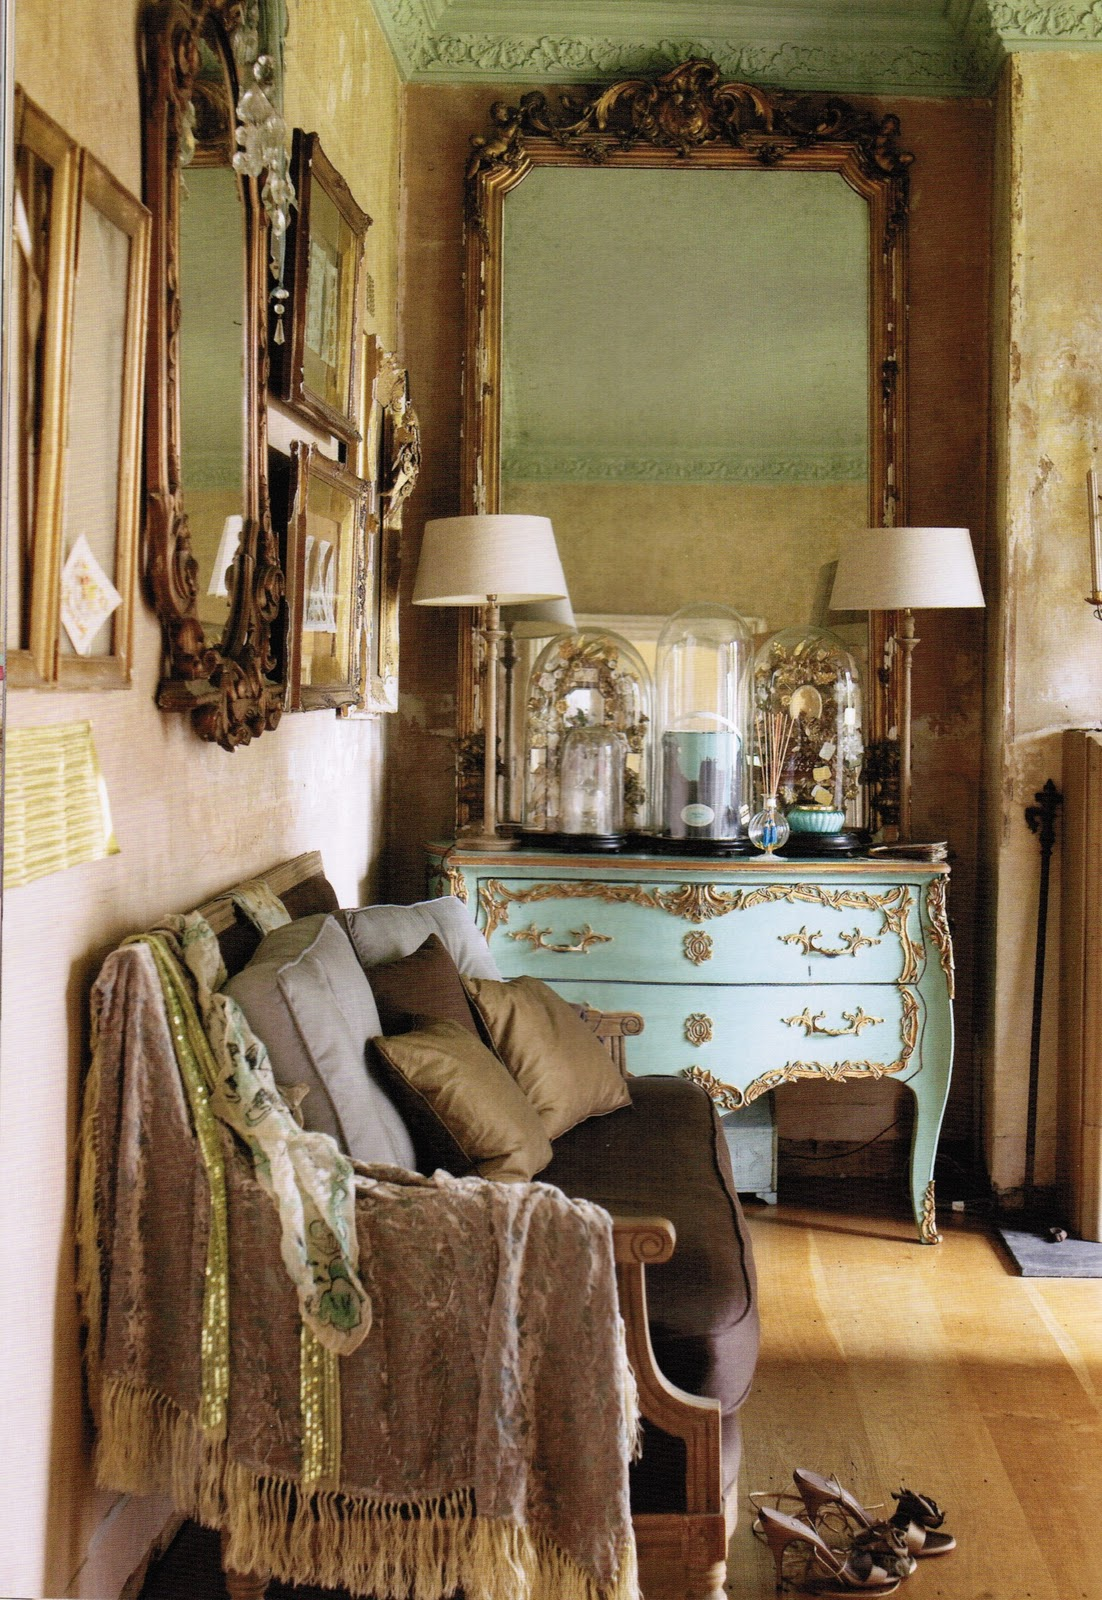 Romantic Decor Entrancing With Romantic Style Decor Maison Images